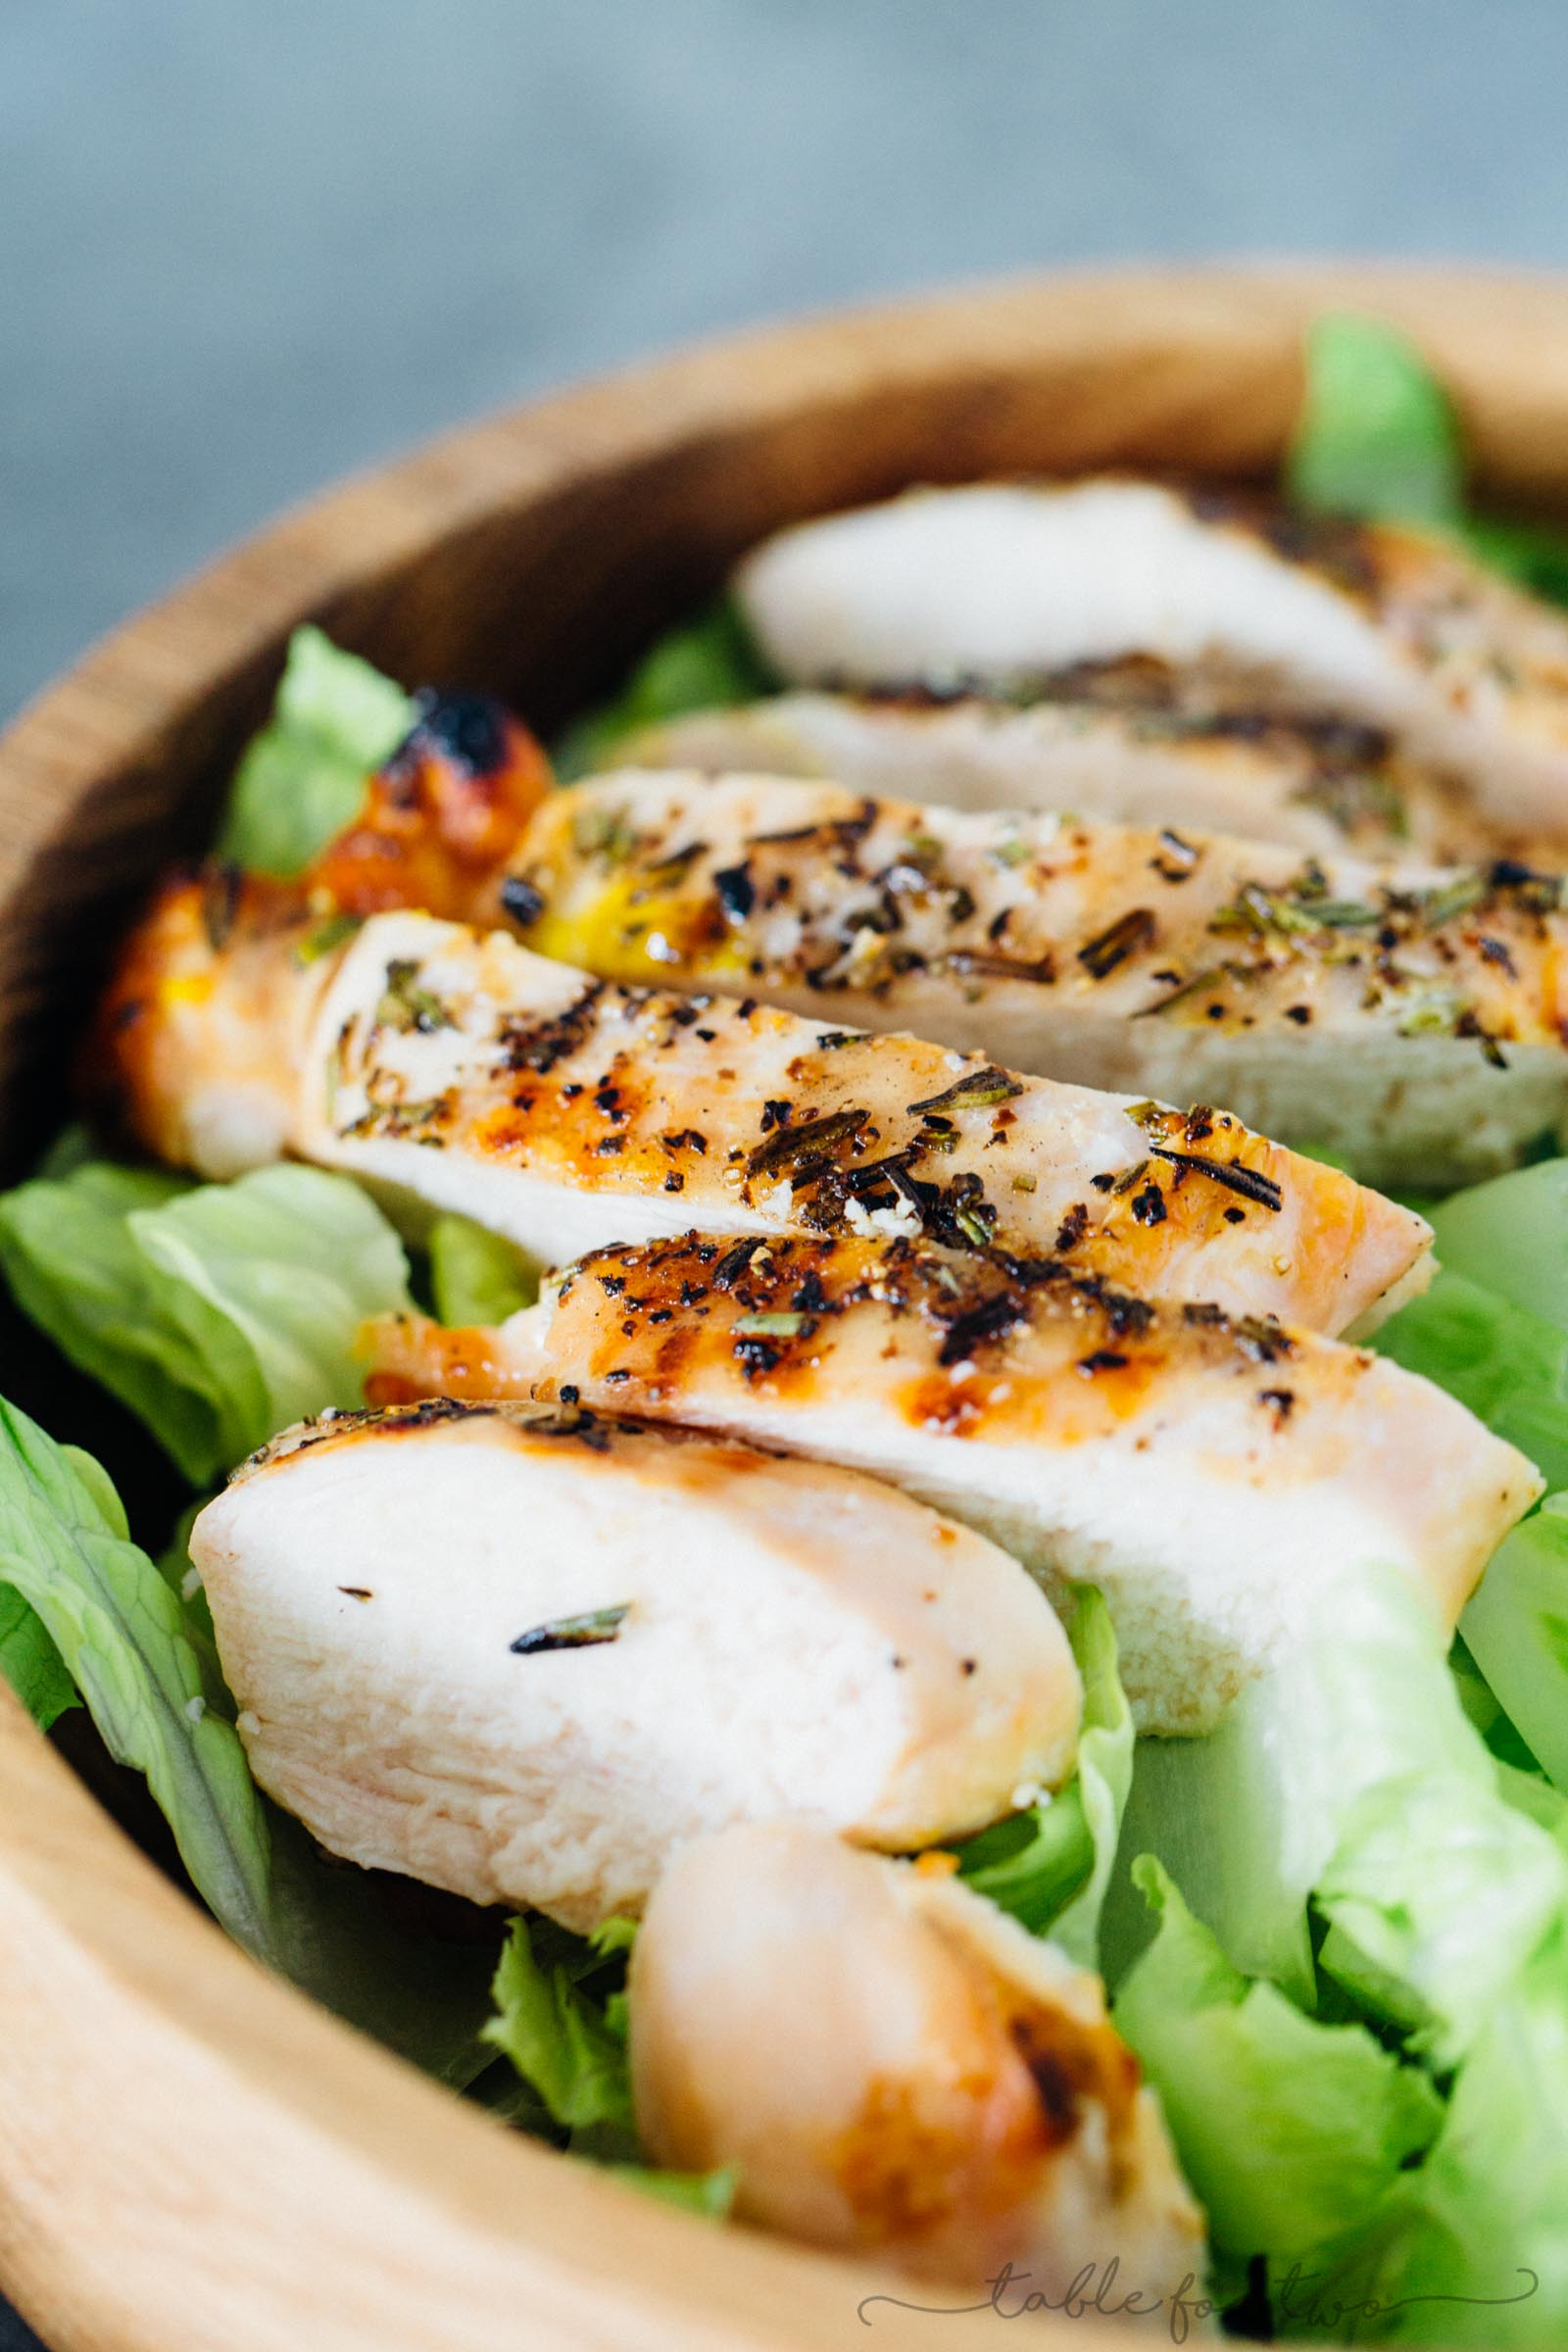 Grilled Rosemary Chicken Salad - Simple Grilled Organic Chicken Recipe